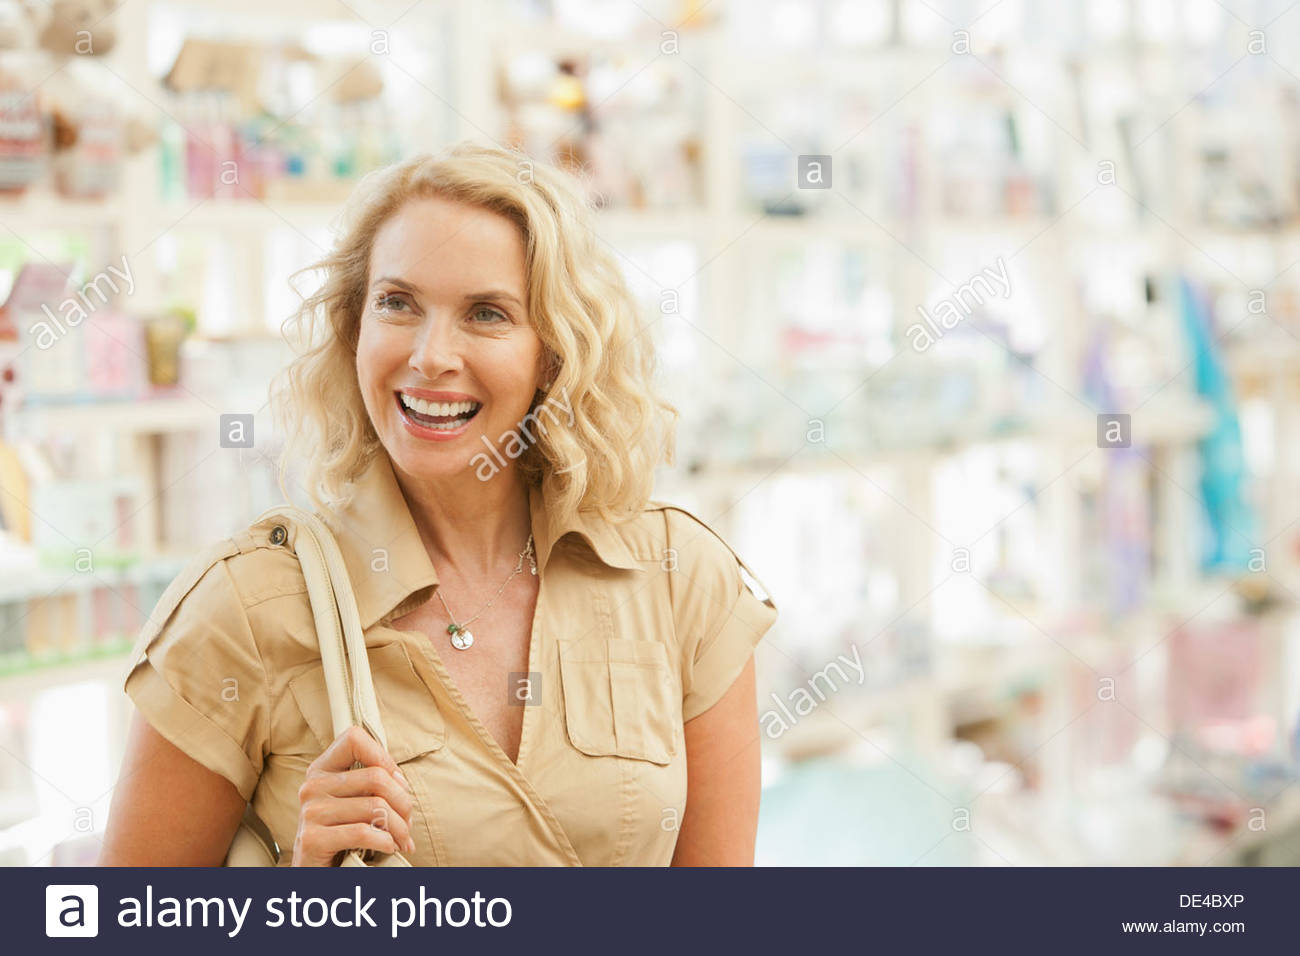 Smiling woman shopping in store - Stock Image